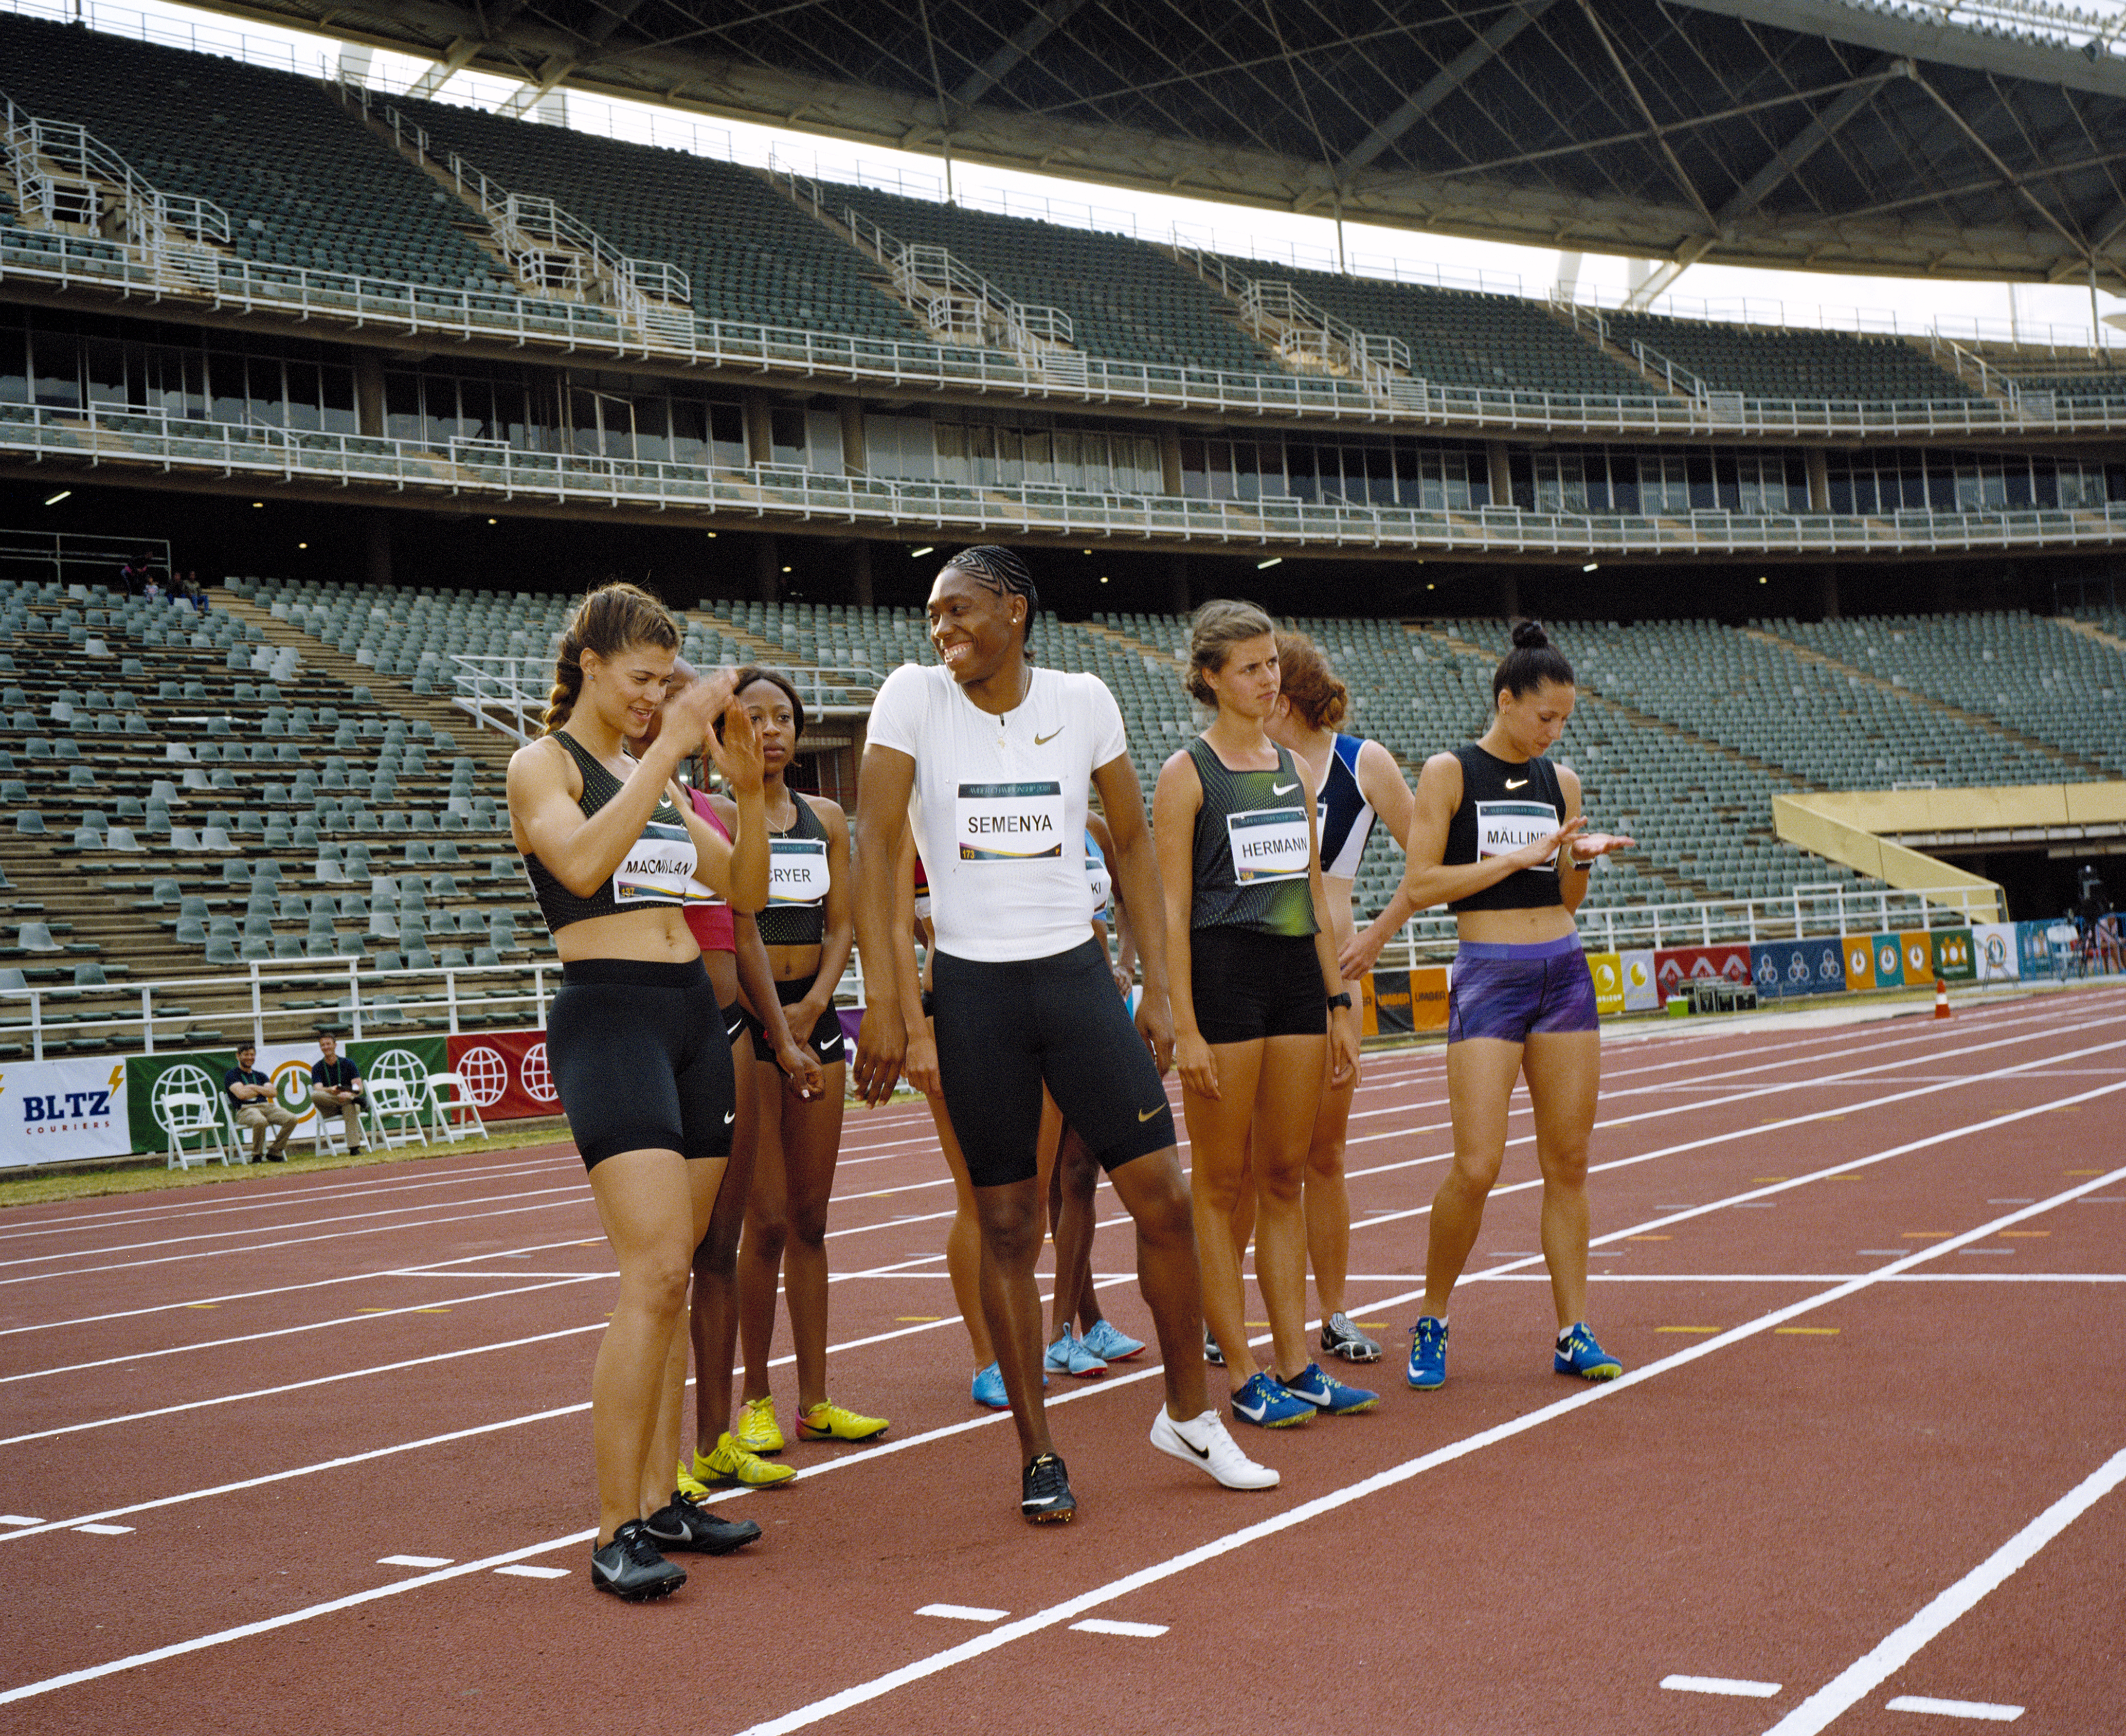 07 BTS Just Do It Caster Semenya